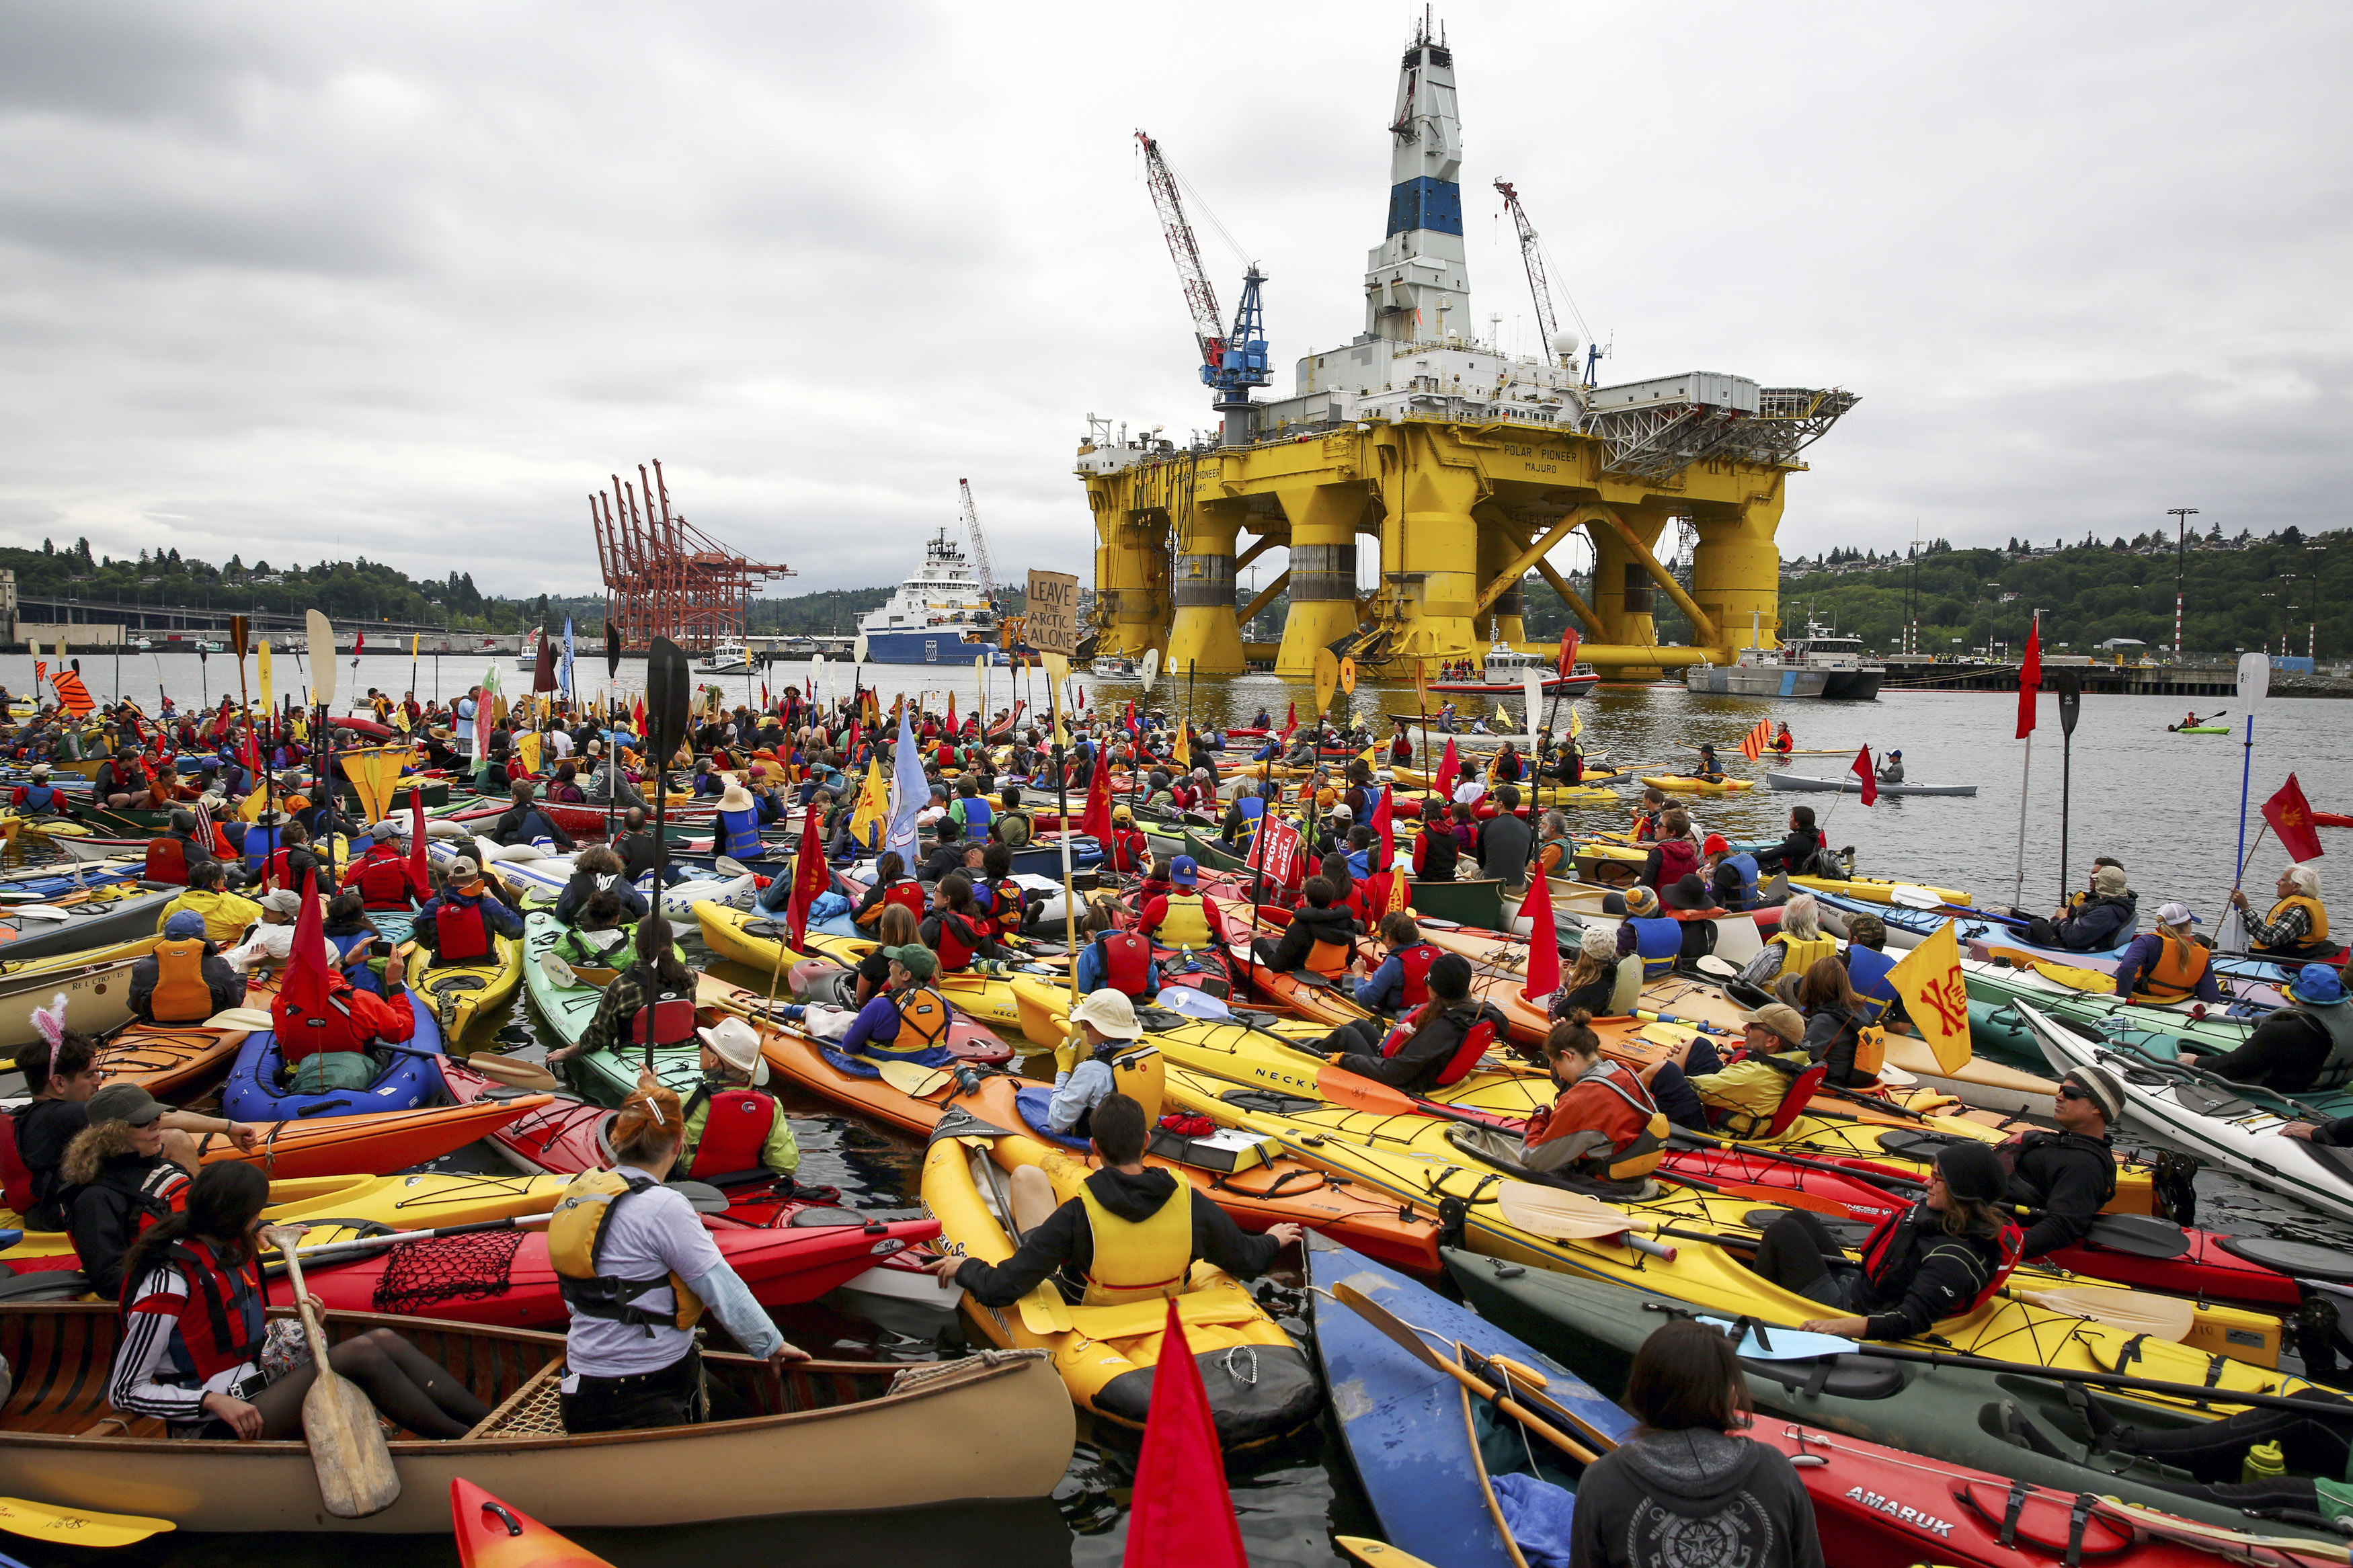 """Activists who oppose Royal Dutch Shell's plans to drill for oil in the Arctic Ocean prepare their kayaks for the """"Paddle in Seattle"""" protest on Saturday, May 16, 2015, in Seattle. The protesters gathered at a West Seattle park and then joined hundreds of others in Elliott Bay, next to the Port of Seattle Terminal 5, where Shell's Polar Pioneer drilling rig is docked. (Daniella Beccaria/seattlepi.com via AP) MAGS OUT; NO SALES; SEATTLE TIMES OUT; TV OUT; MANDATORY CREDIT"""